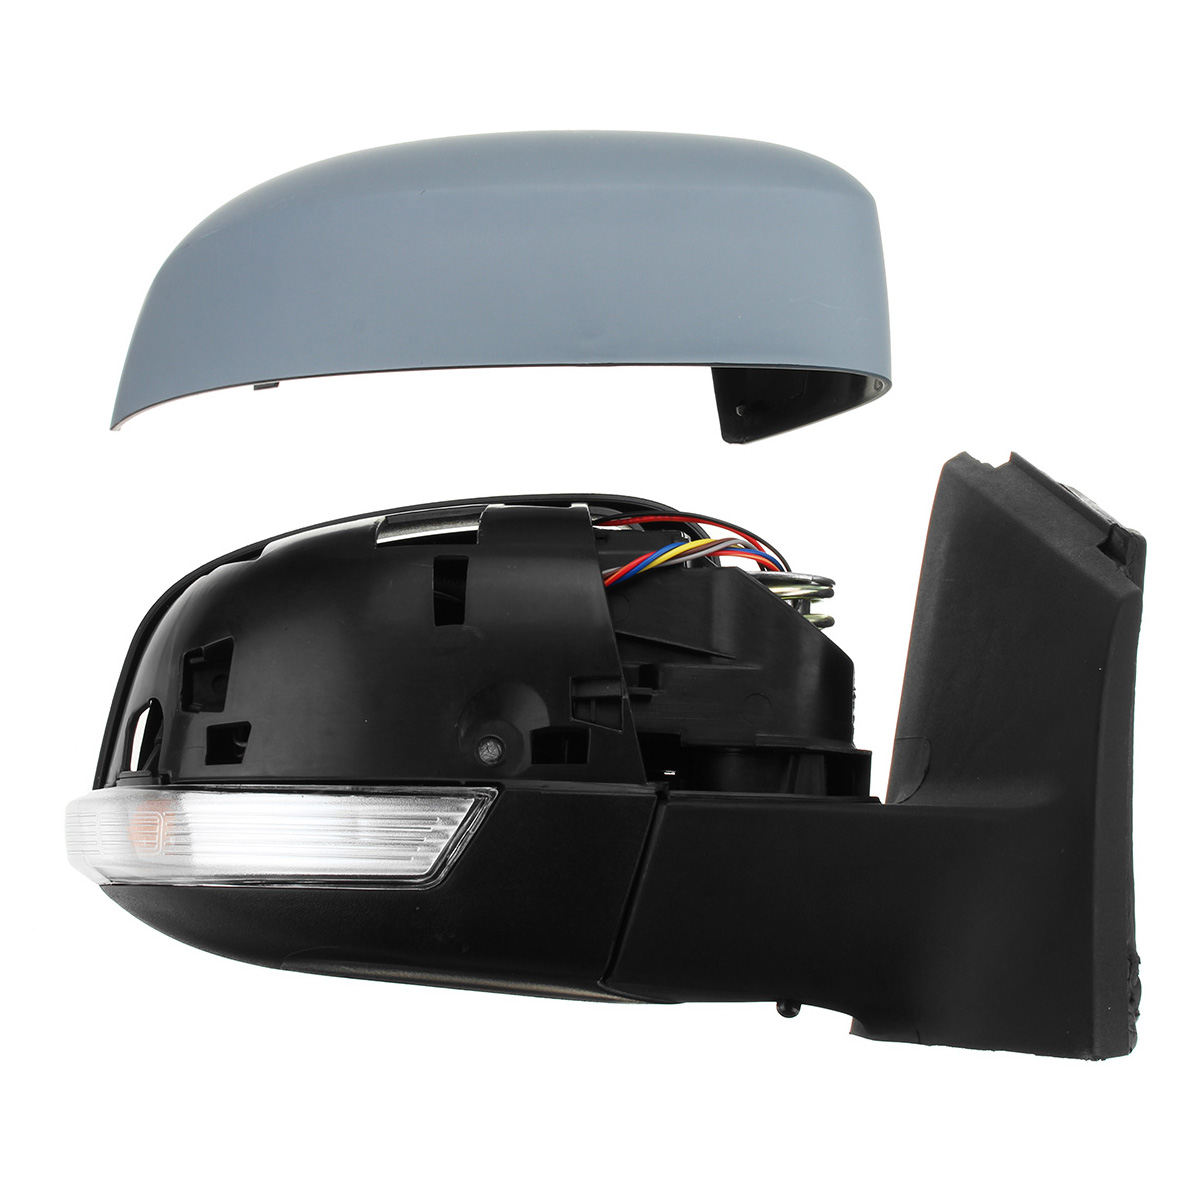 Door Electric Wing Car Mirror Driver Passenger Side For Ford Focus MK2 2008 - 2011